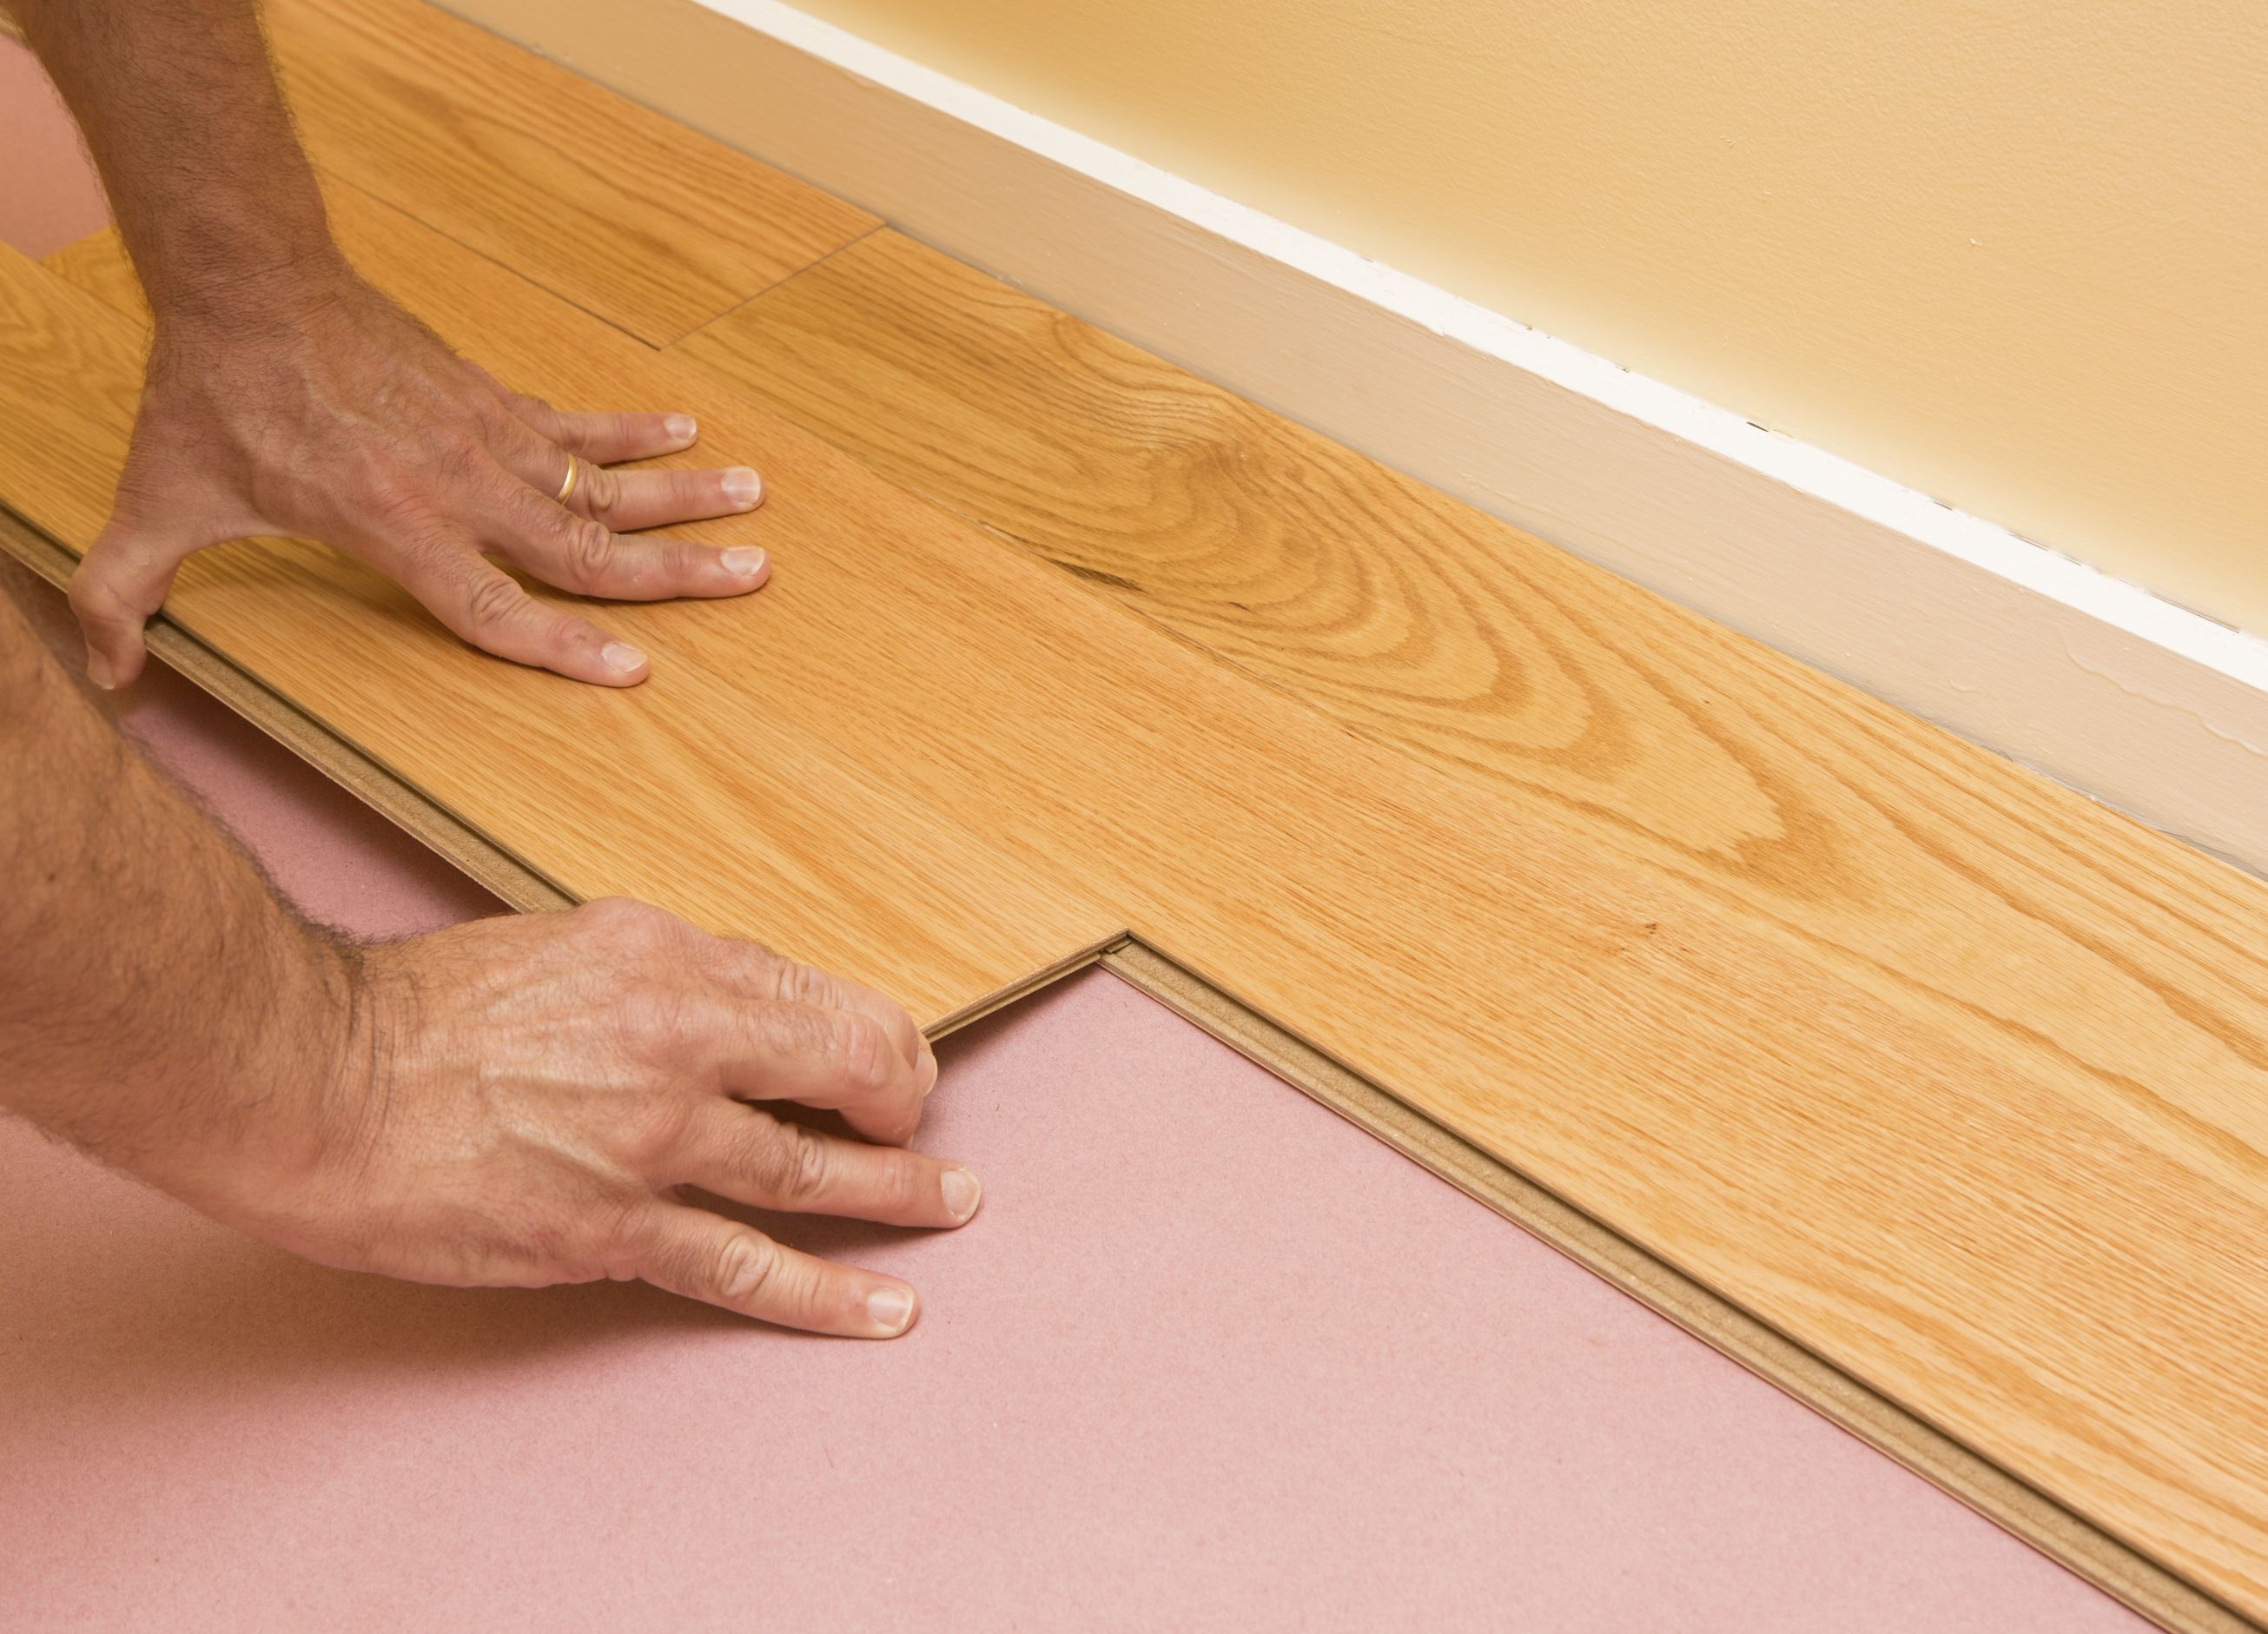 Solid Wood Floor Underlay Concrete Together With The Ever Increasing Popularity Of Hardwood Floorings And Renewed Look